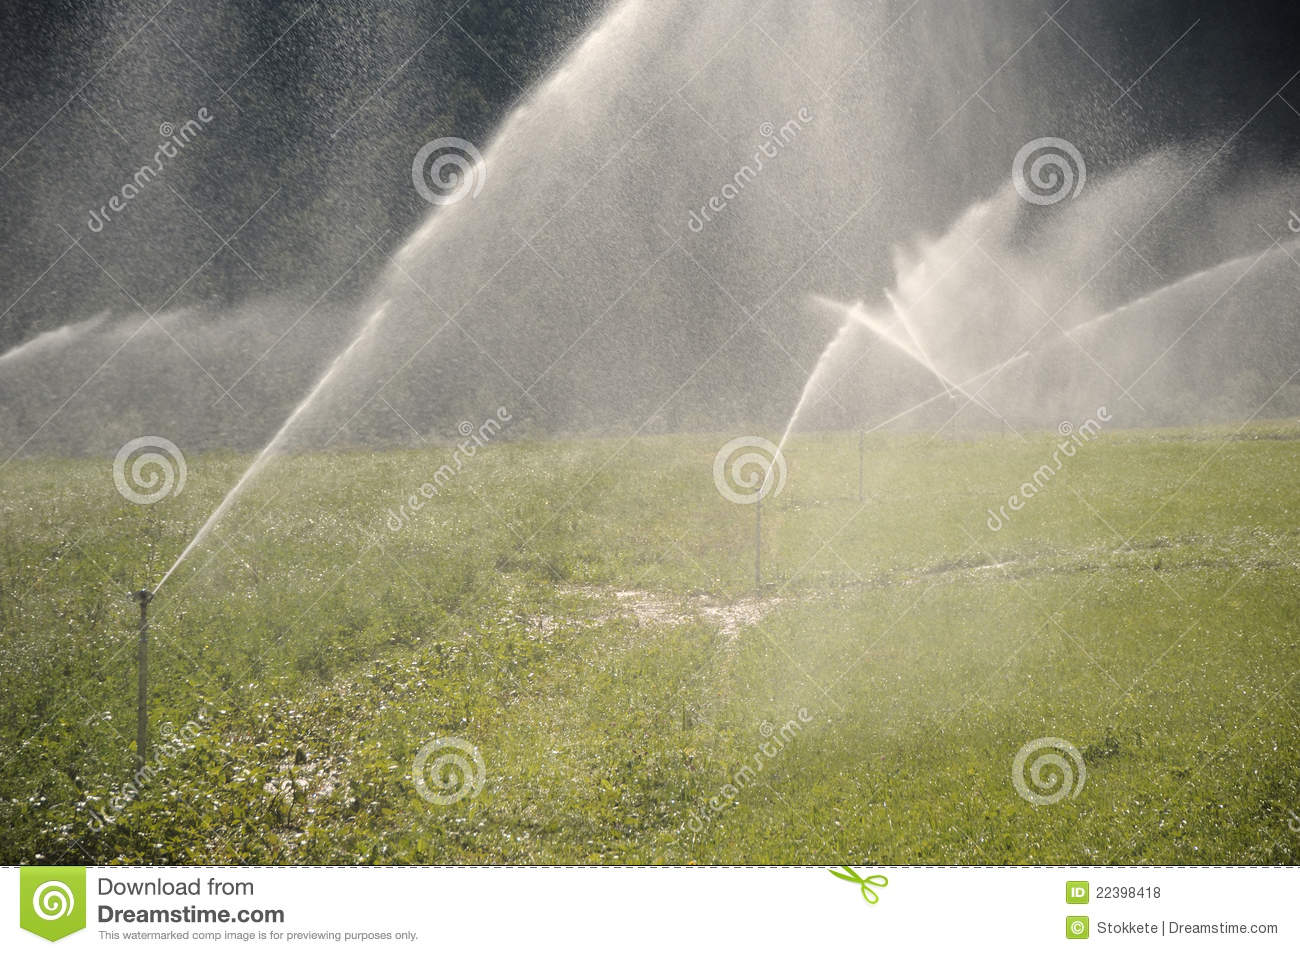 Water Sprinklers Royalty Free Stock Photos   Image  22398418